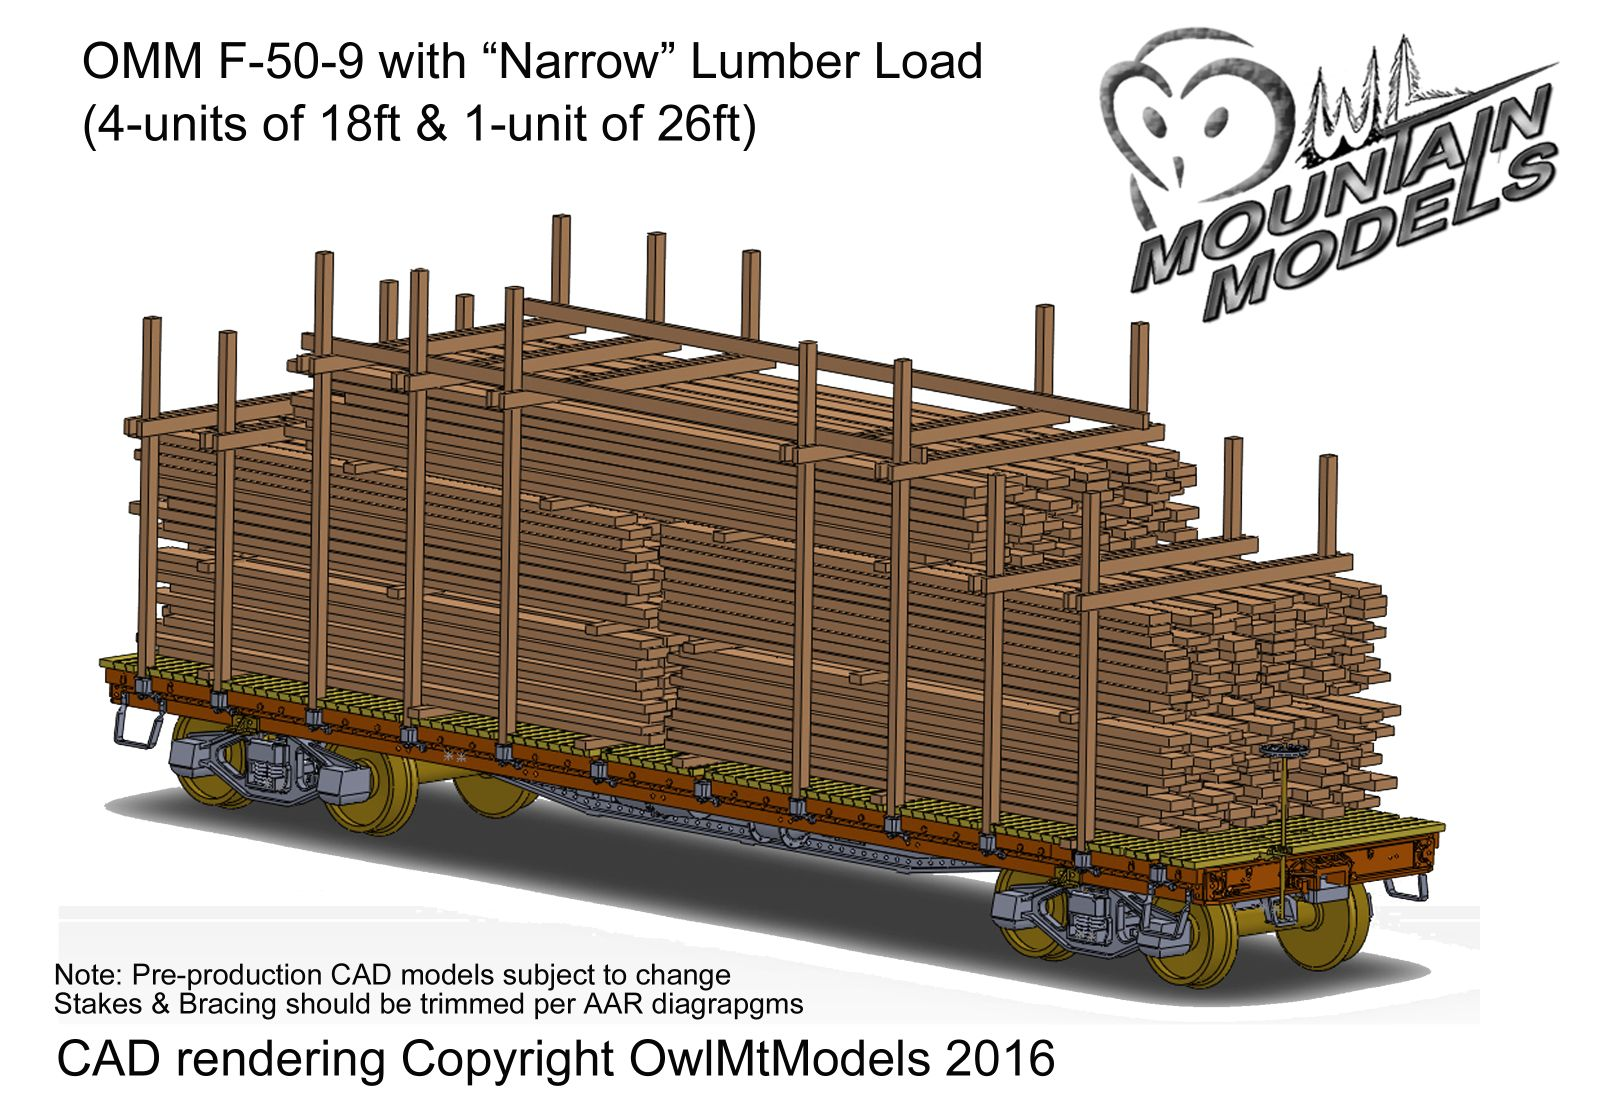 OMM concept for Narrow Lumber Load Kit